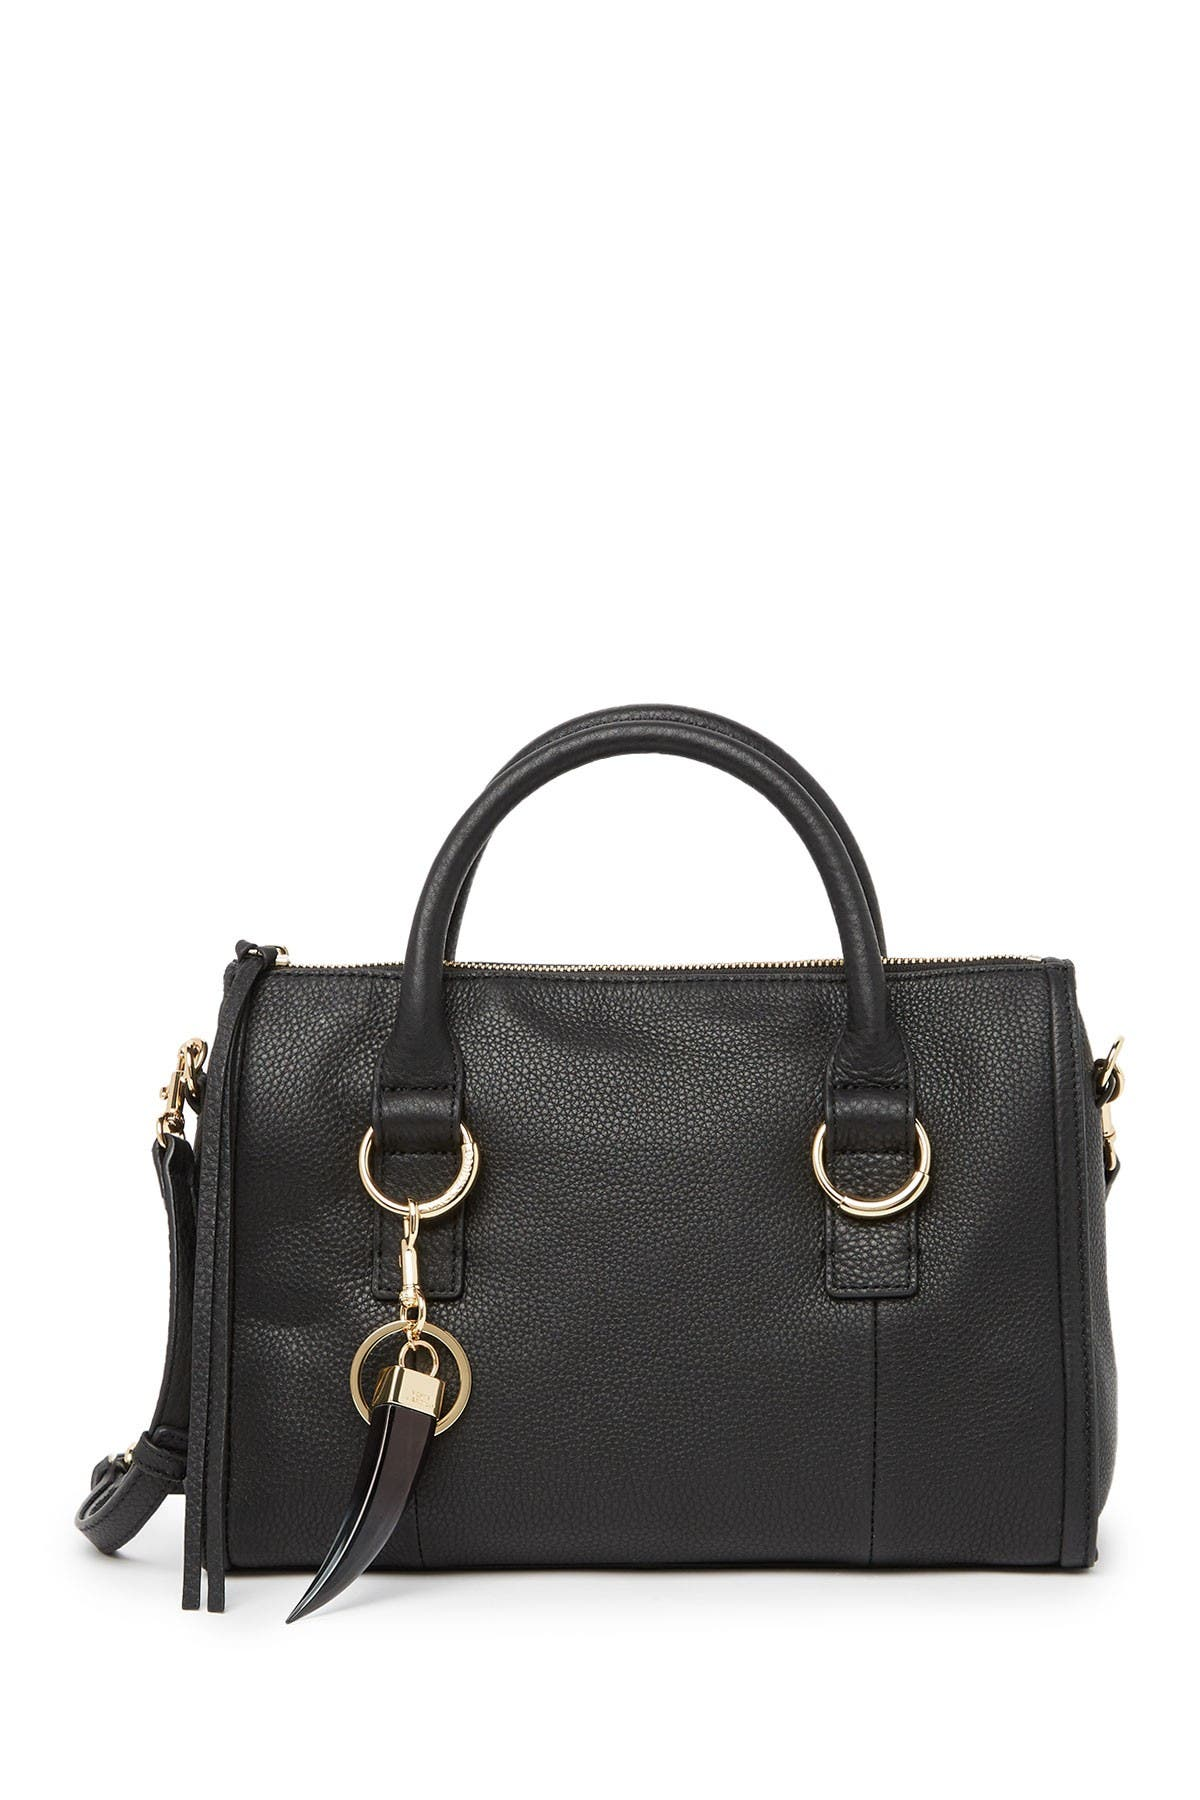 Image of Vince Camuto Caia Satchel